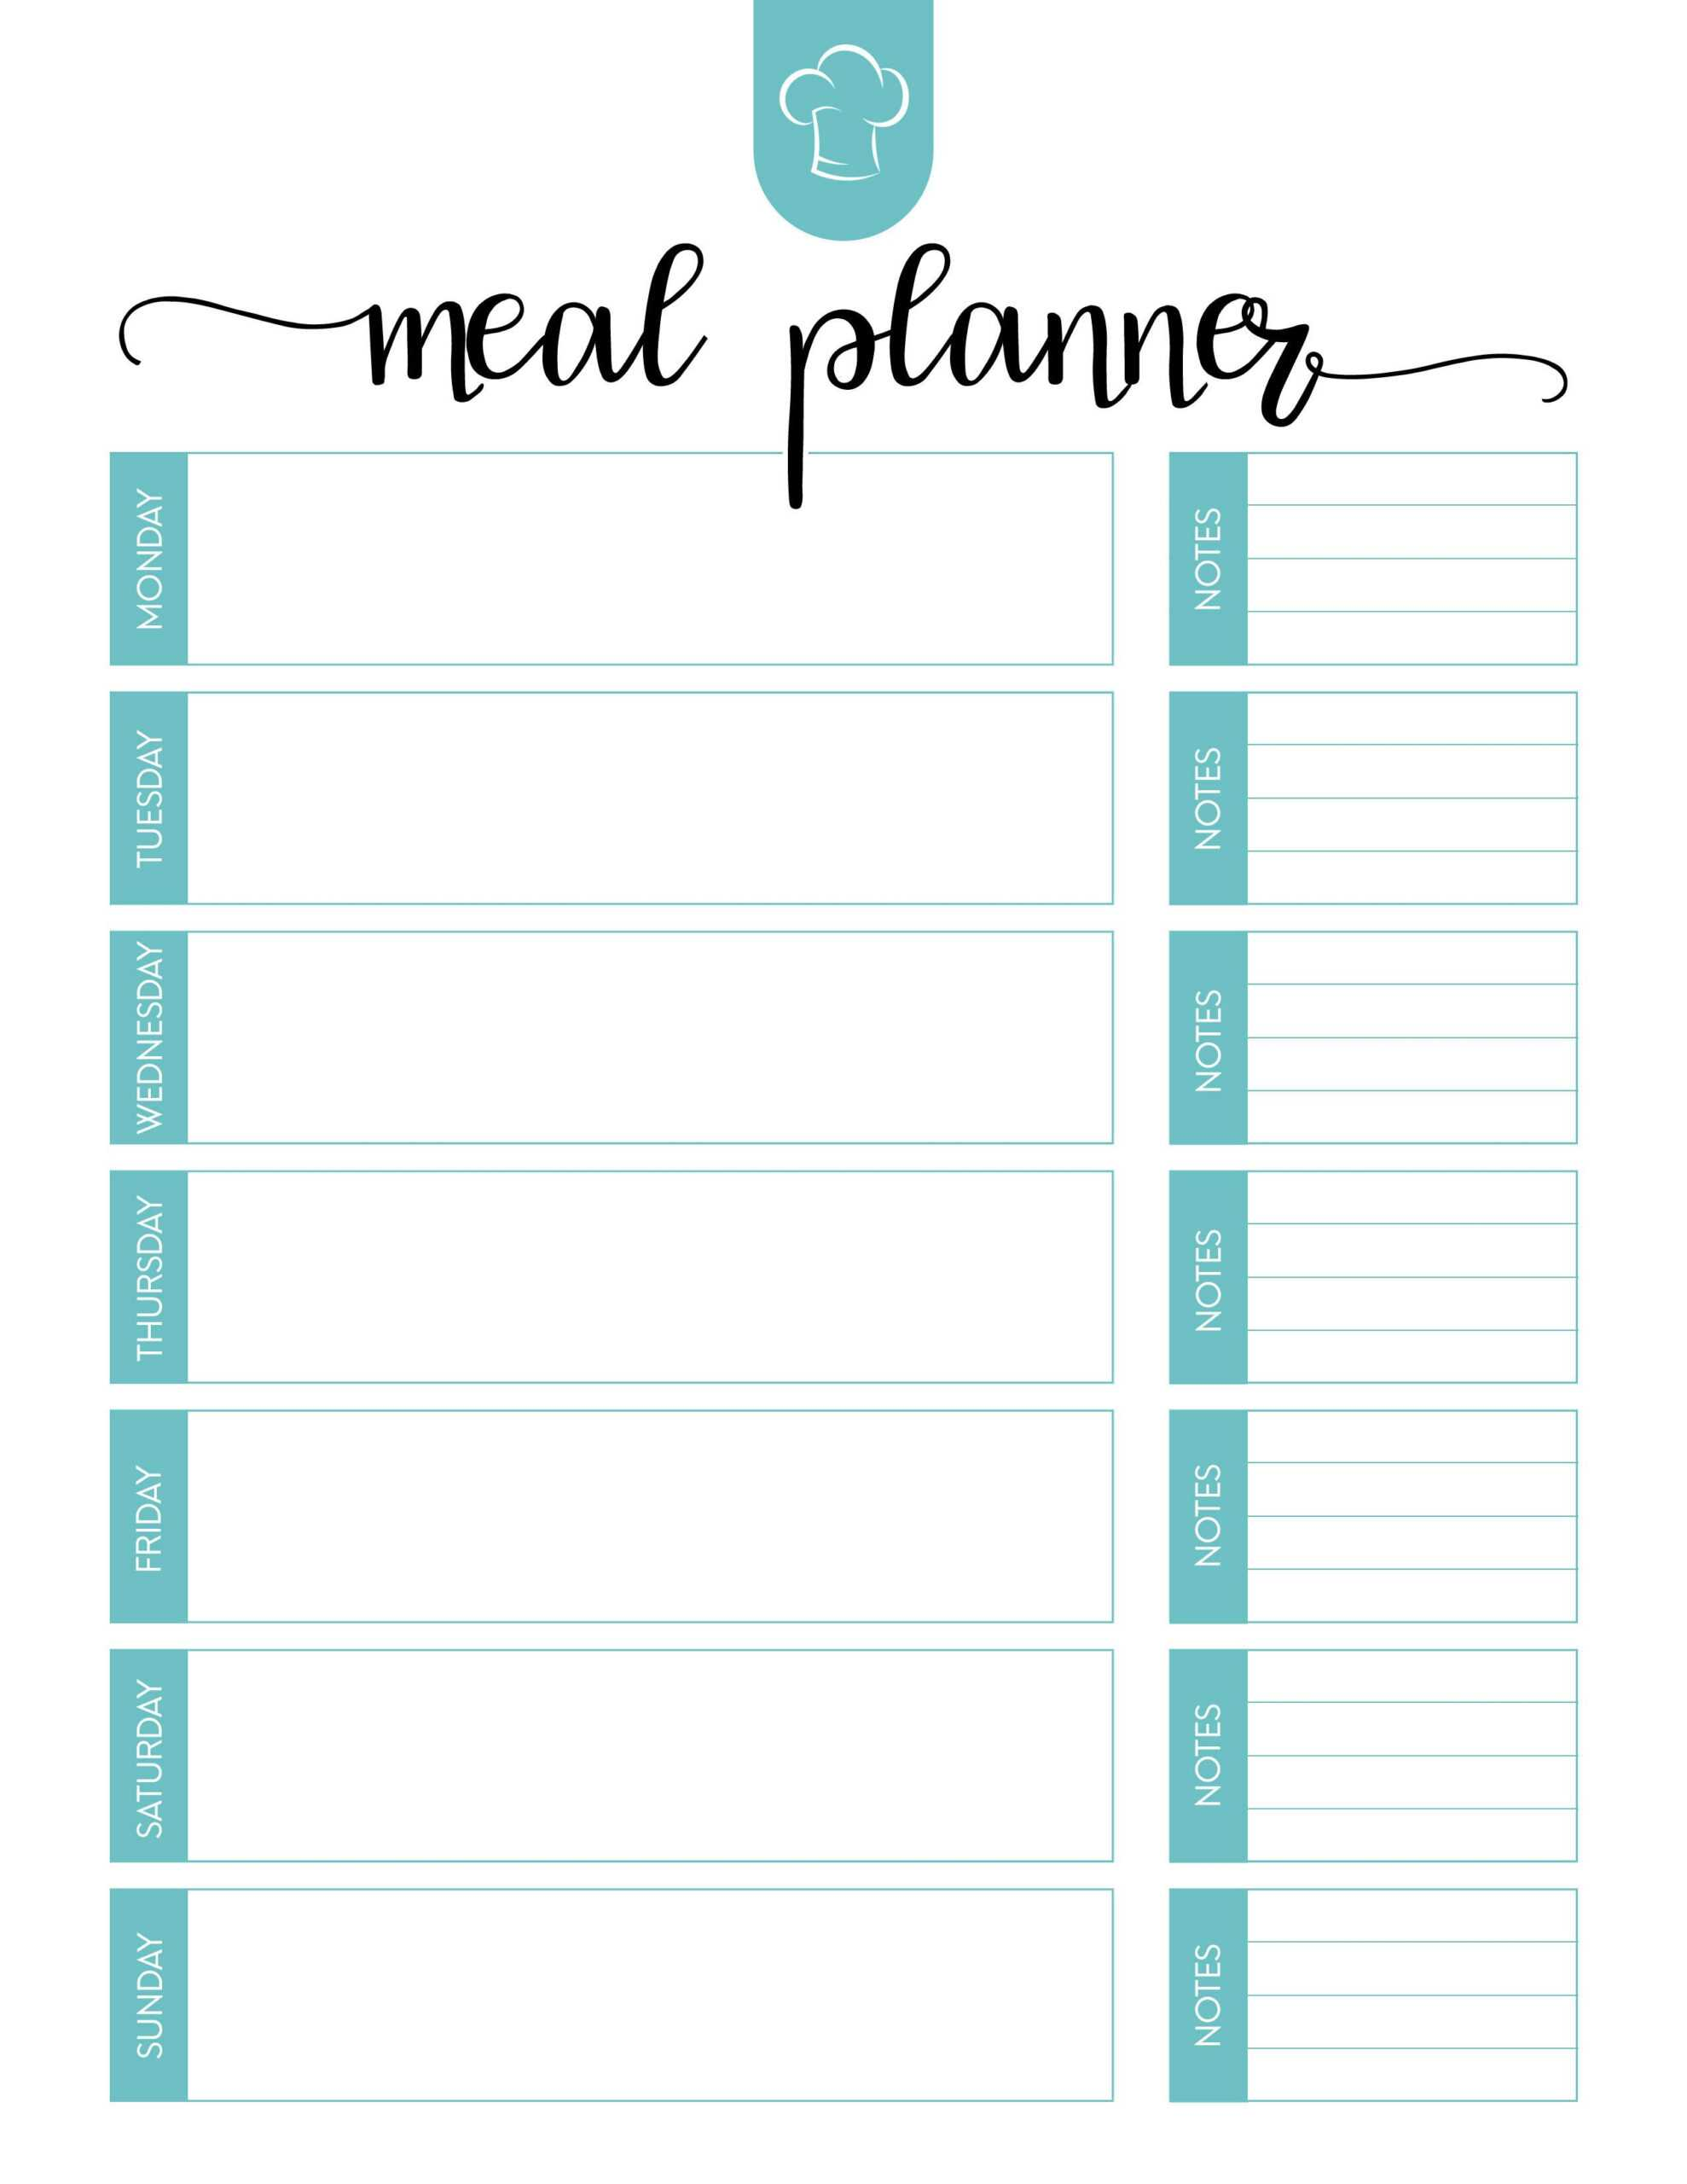 005 Free Menu Plan Template Unique Ideas Meal Planning In Meal Plan Template Word